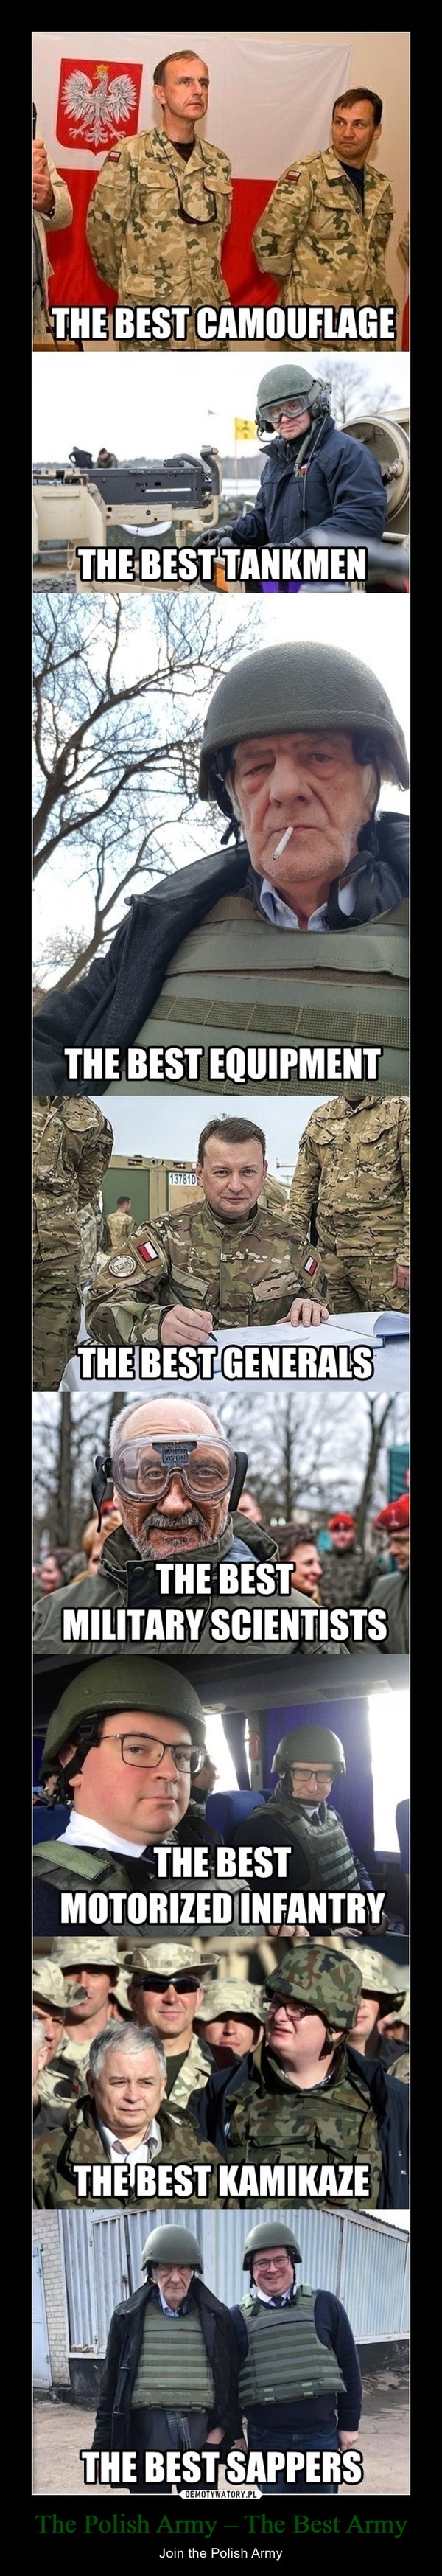 The Polish Army – The Best Army – Join the Polish Army